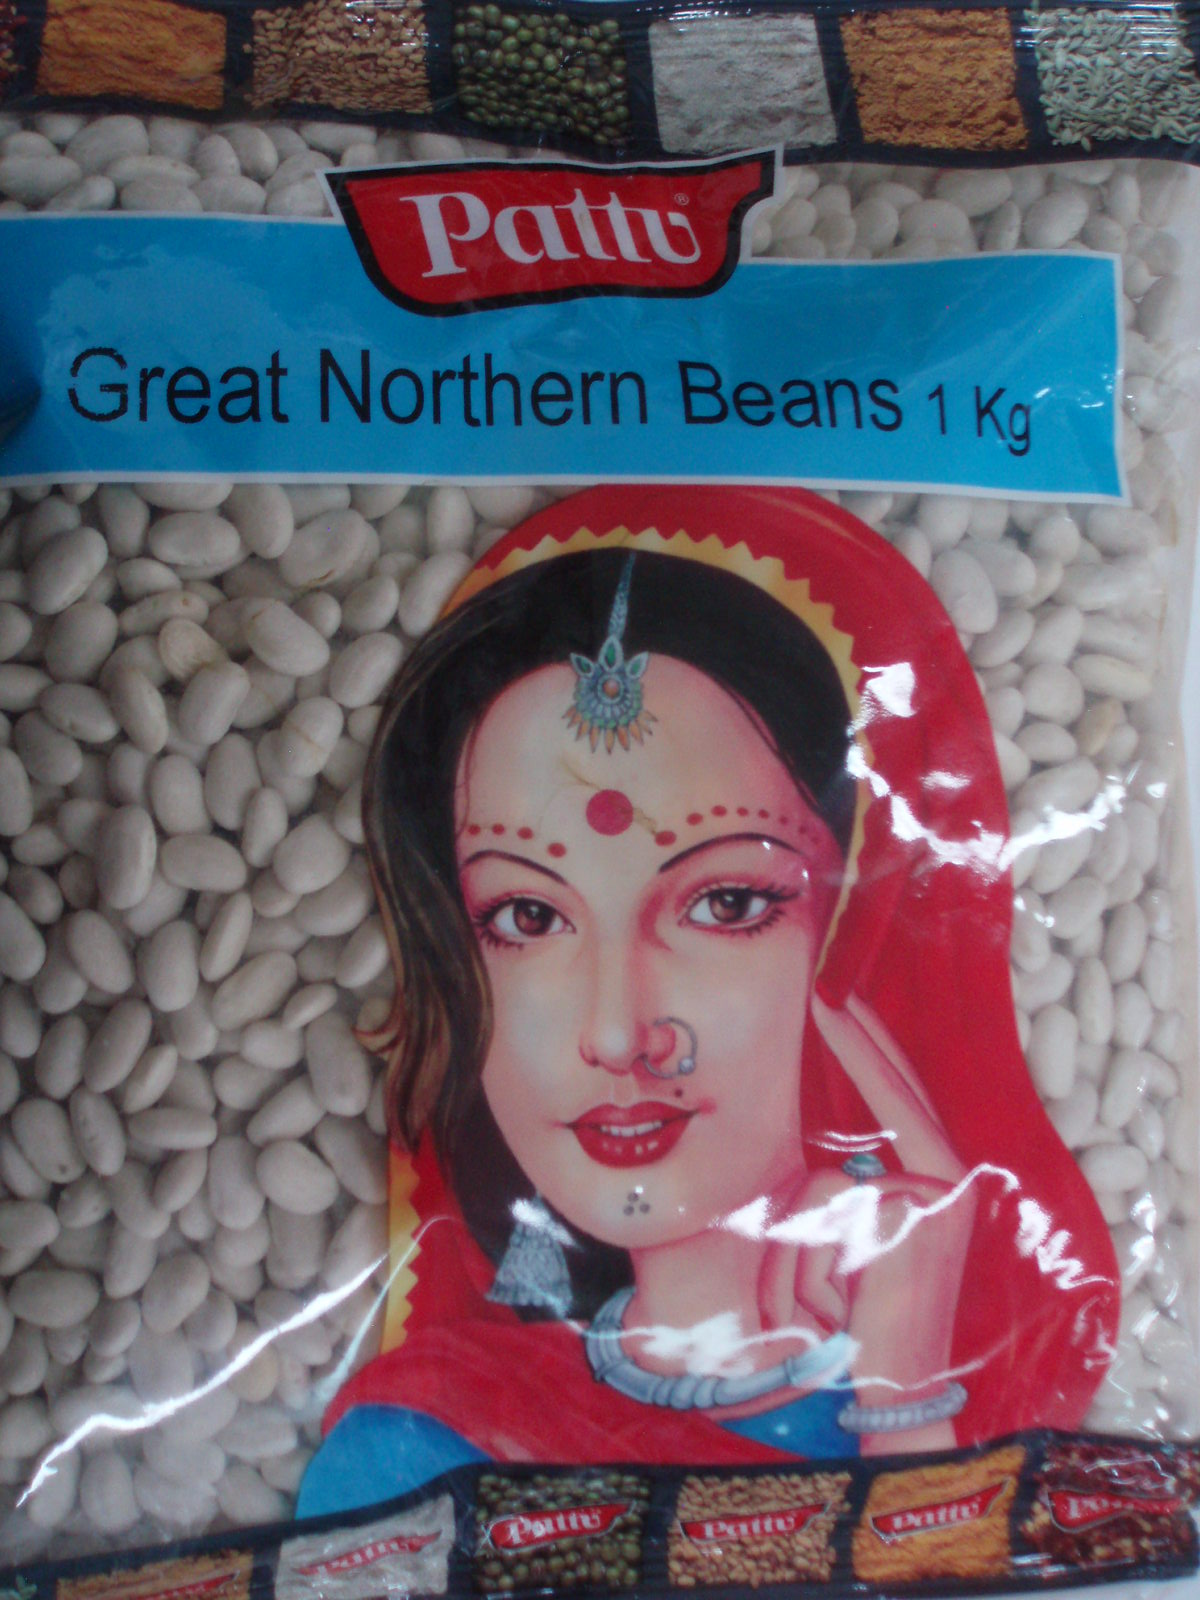 Great Northern Beans-Pattu-1 Kg